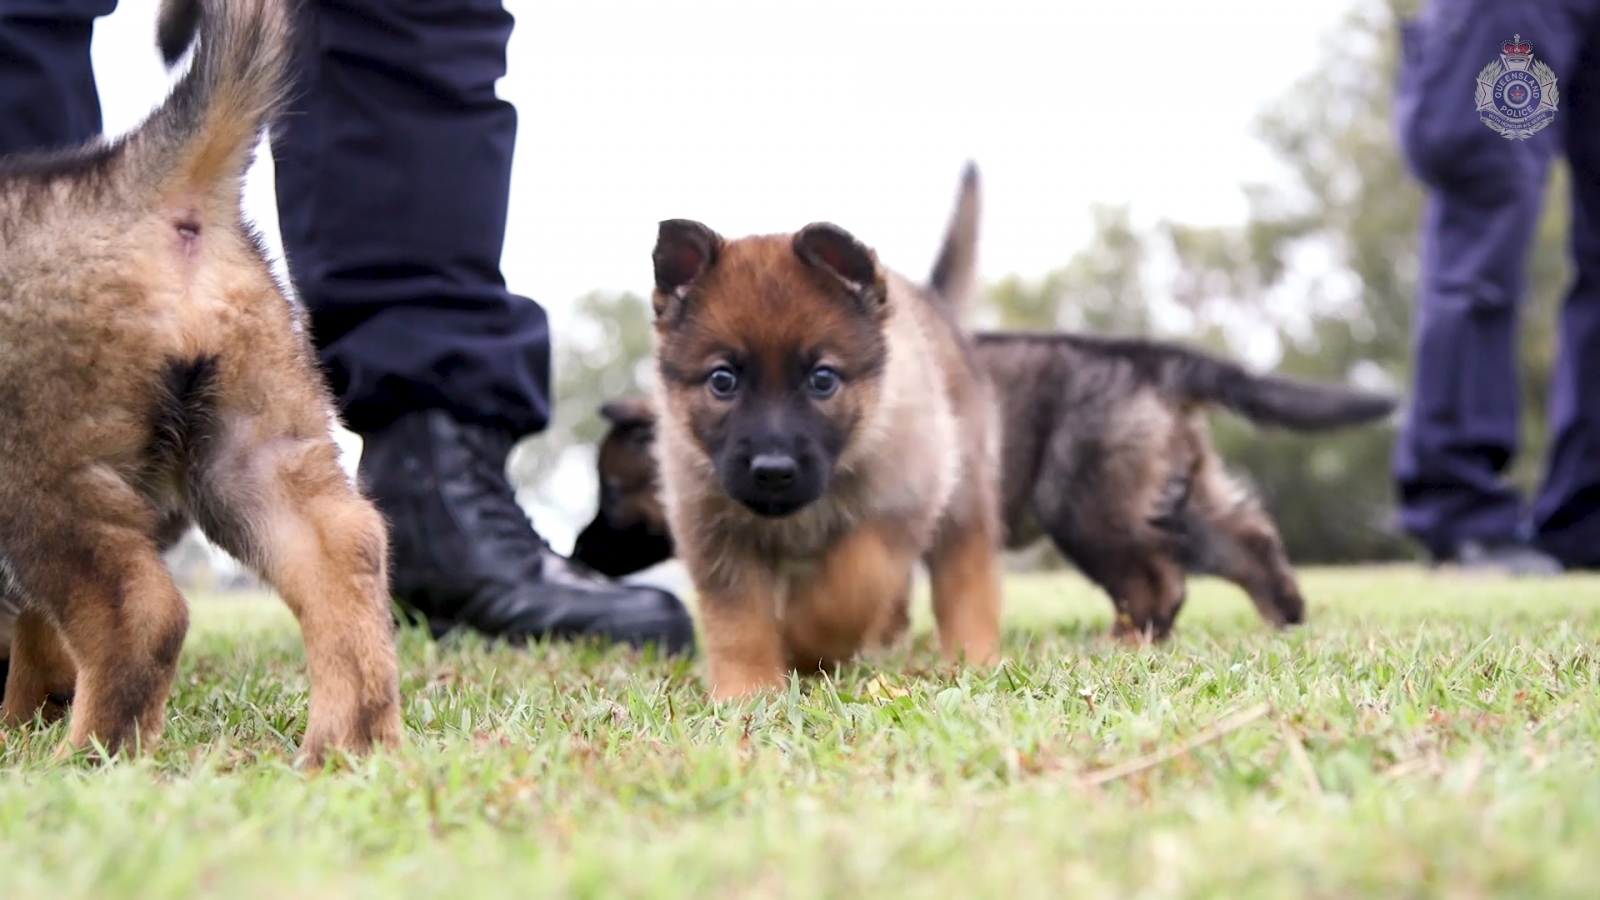 queensland-police-forces-adorable-new-recruits-are-of-the-fluffy-variety